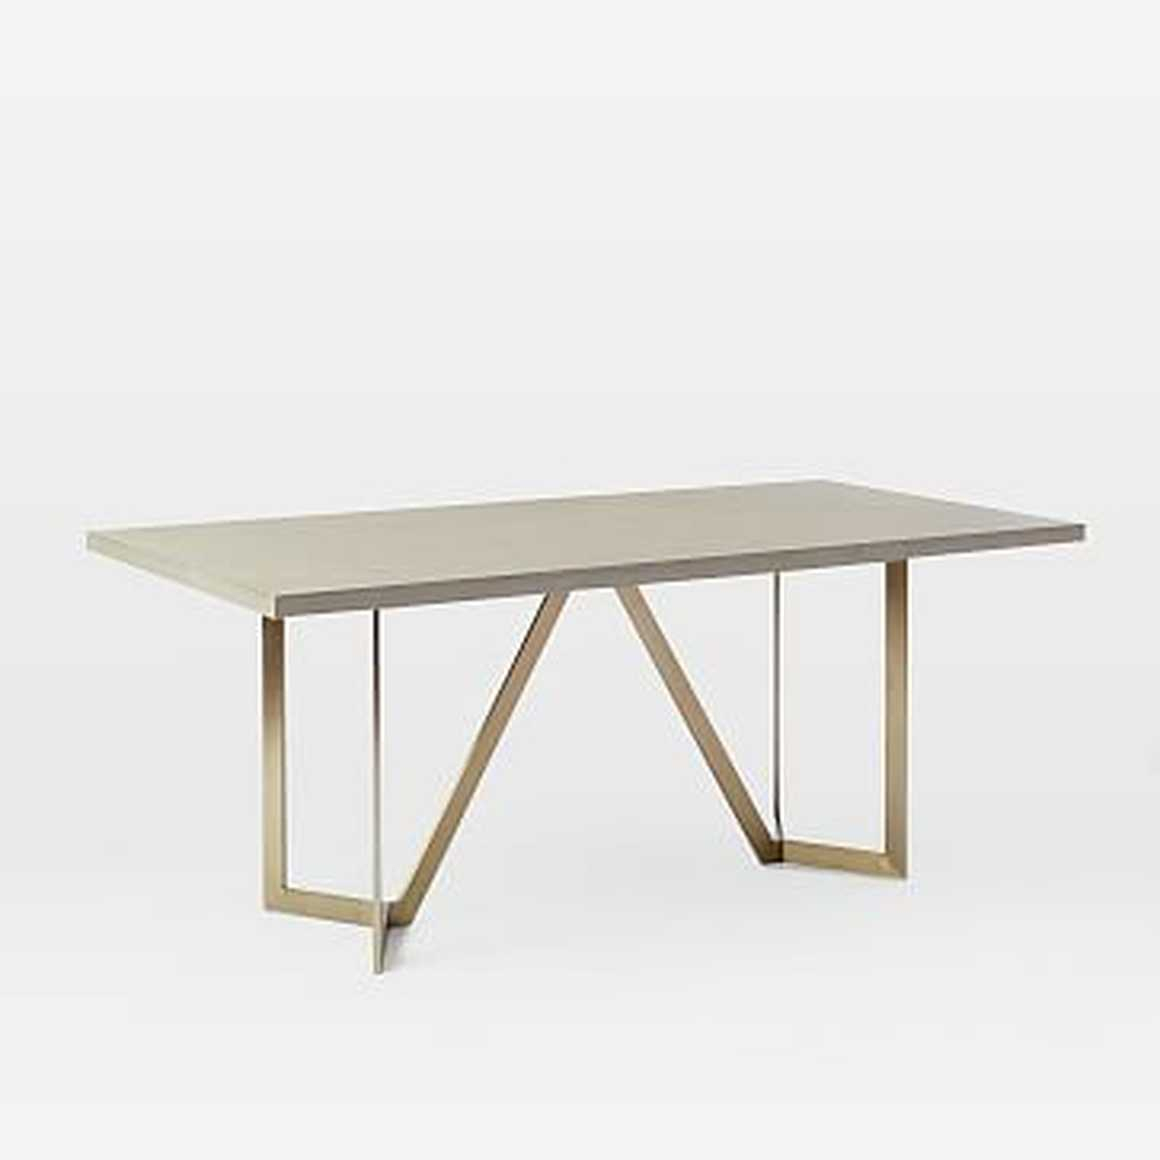 Tower Dining Table 72' Concrete, Blackened Brasswest Elm | Havenly Pertaining To Latest West Dining Tables (Image 15 of 25)